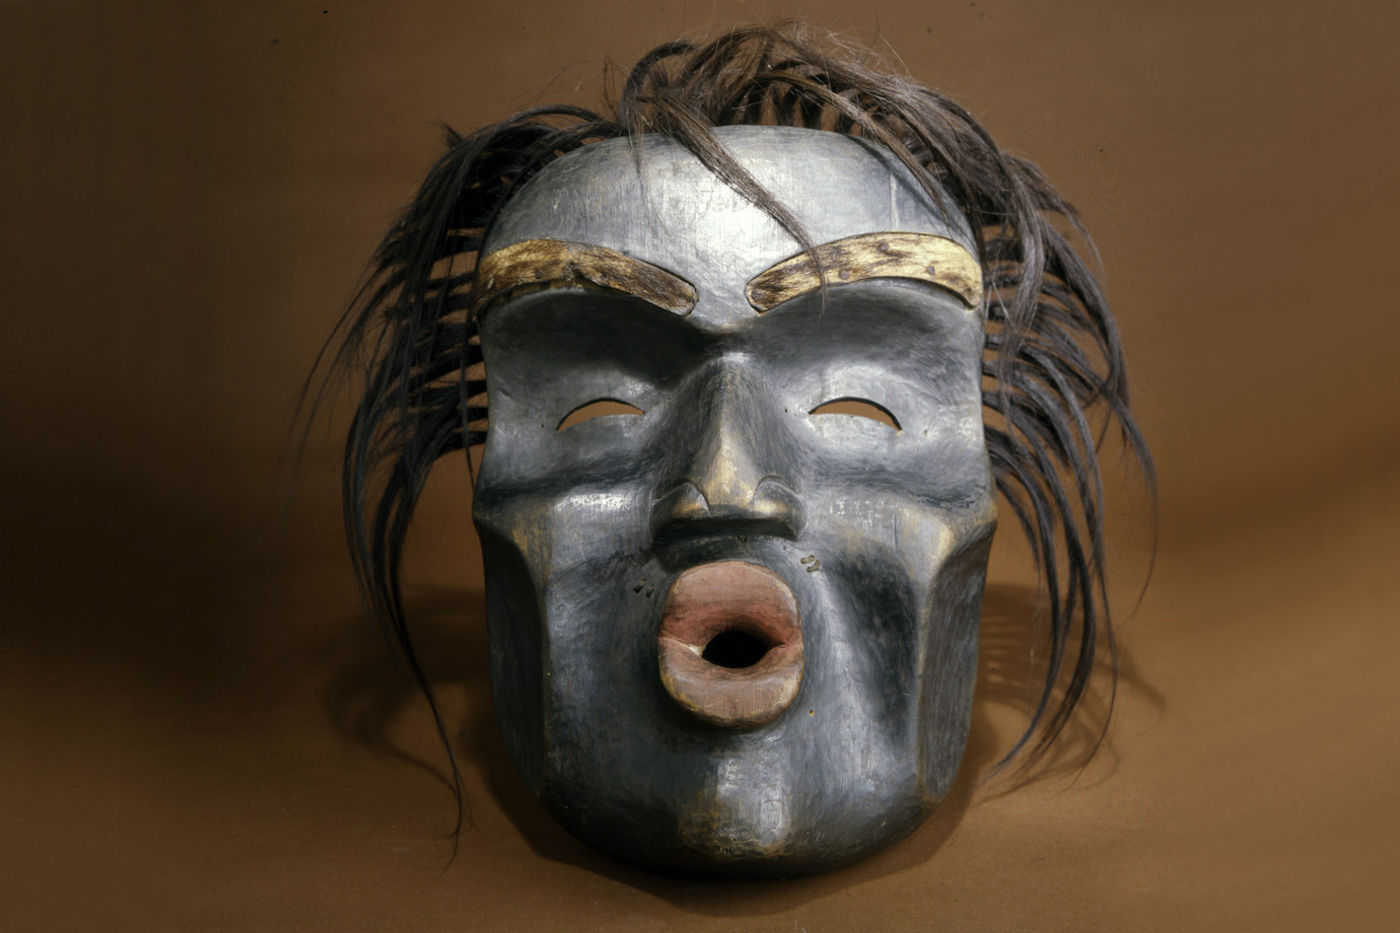 A mask with prominent eyebrows and a large open mouth, as if singing. The black hair looks realistic and frames the face.